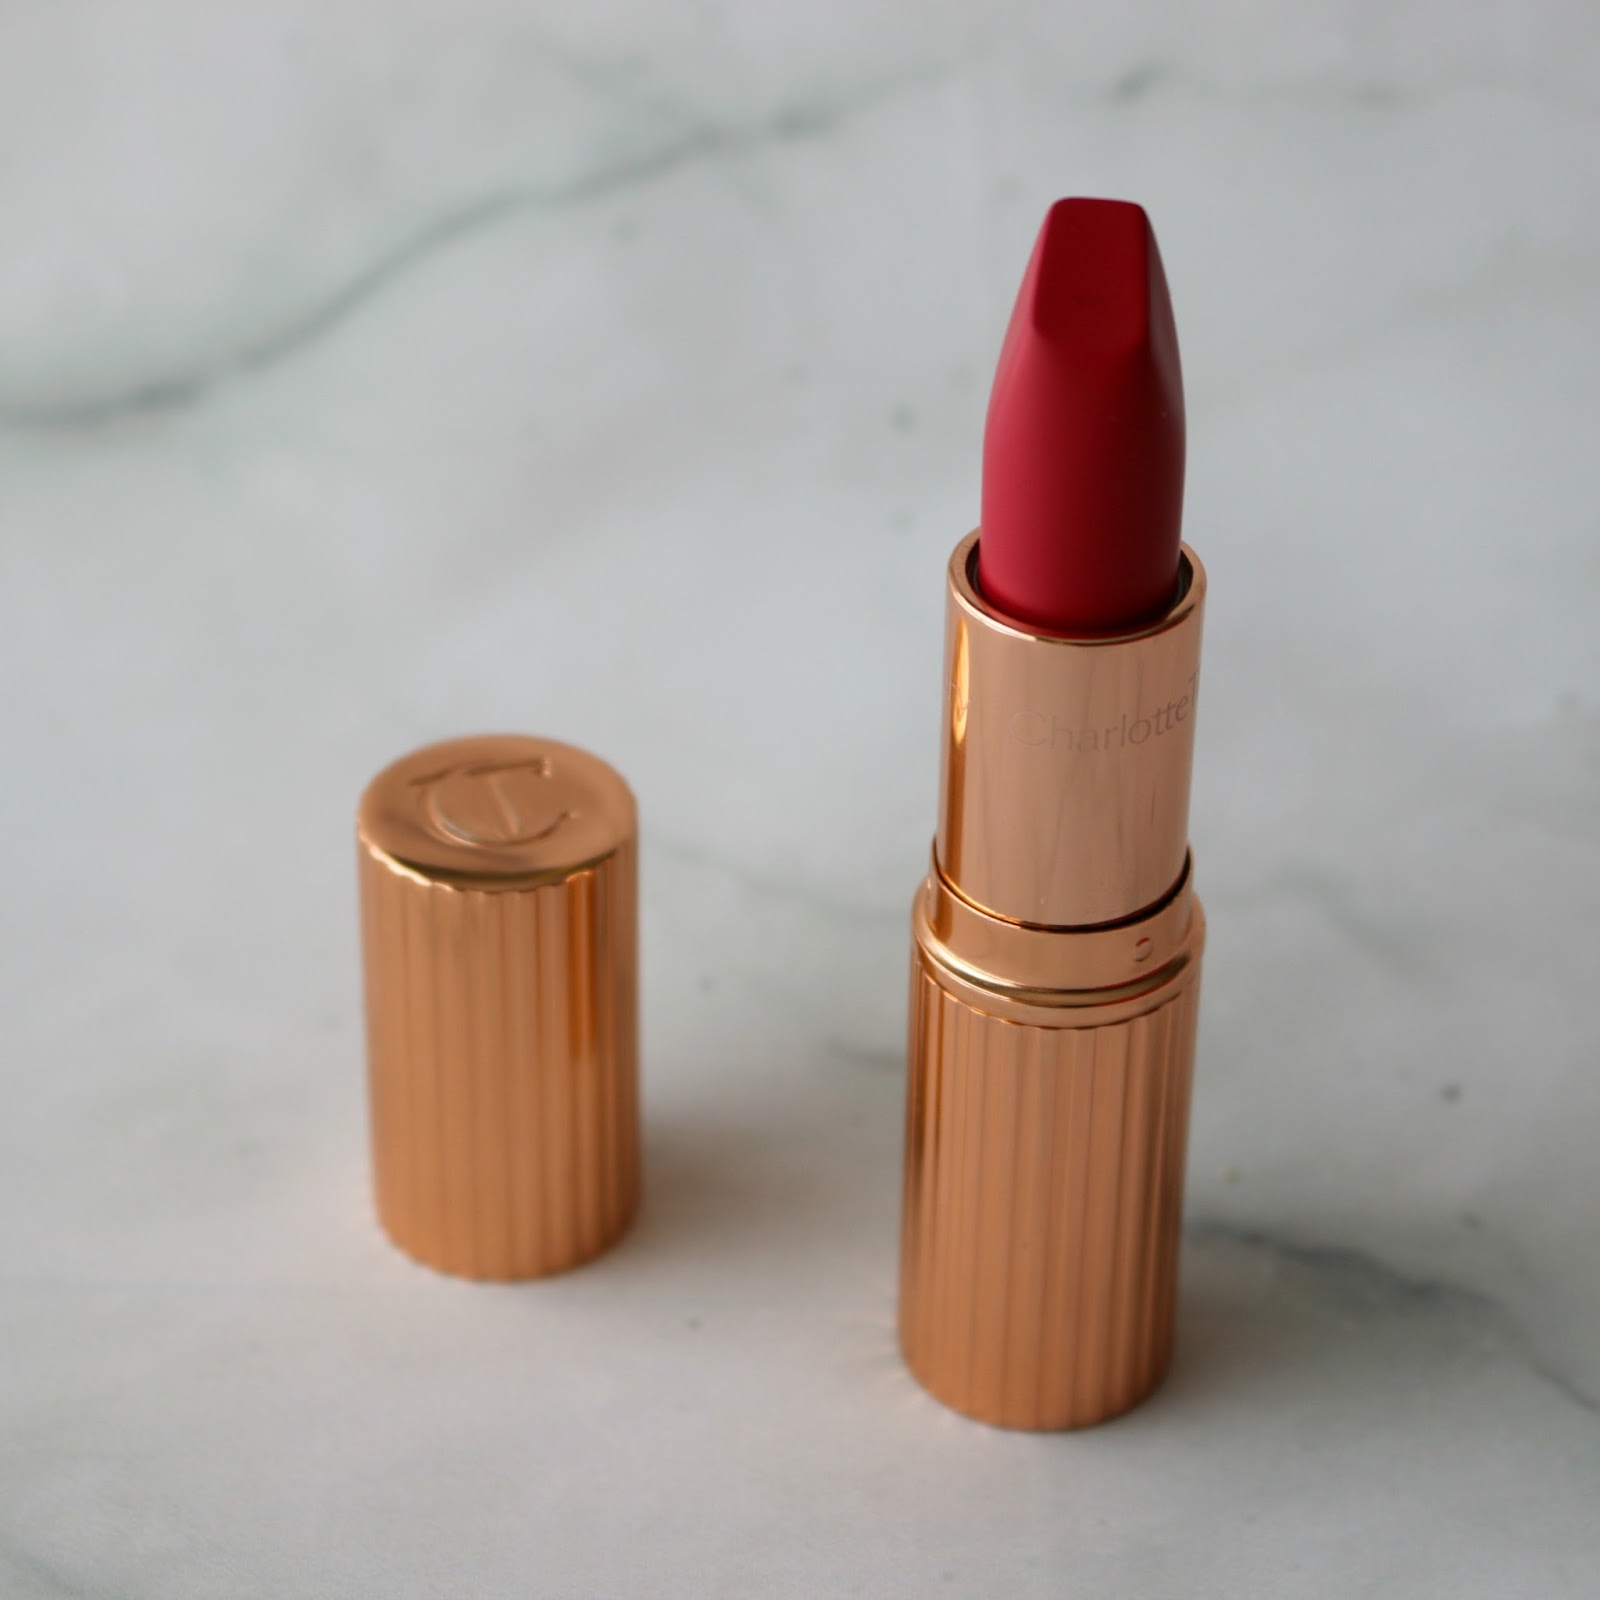 charlotte tilbury matte revolution the queen lipstick